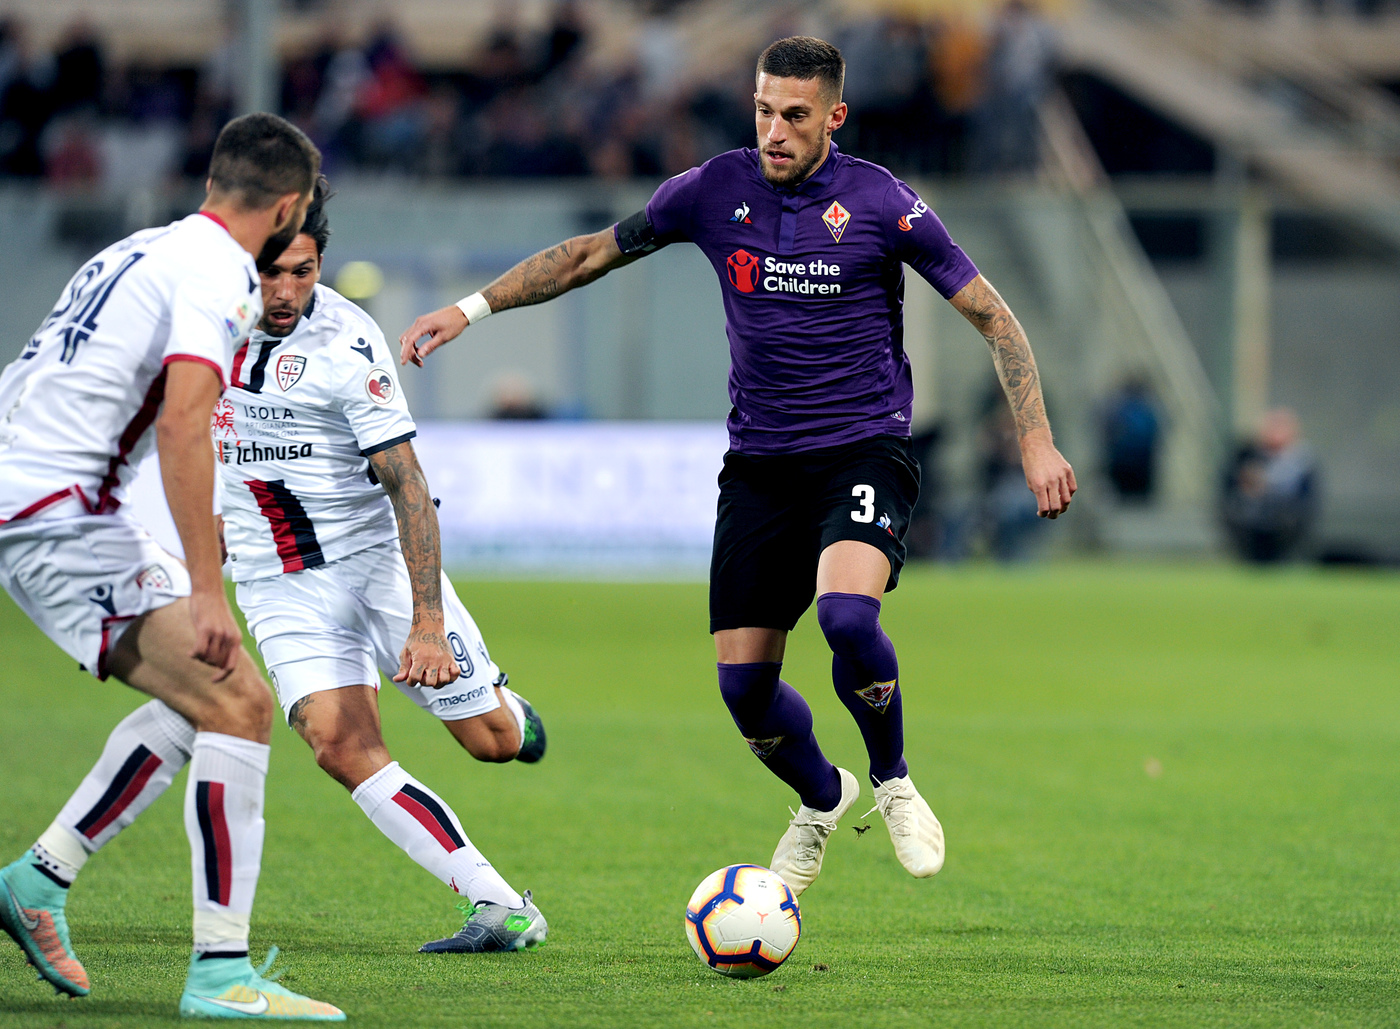 Serie A Round 28 Preview: Fiorentina Could Climb Table With Win Over Cagliari